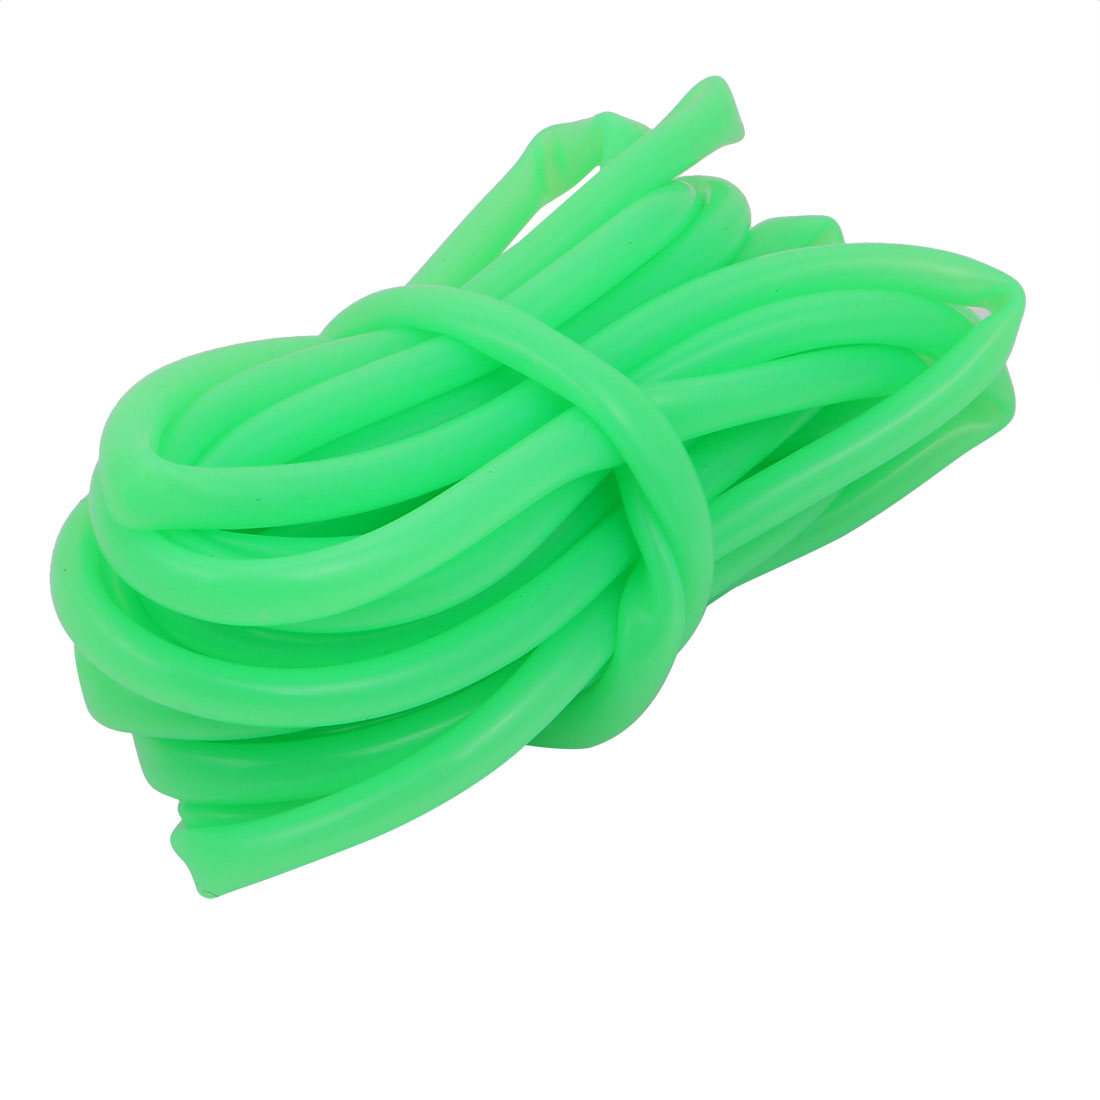 Unique Bargains 5mm x 7mm Heat-Resistant Silicone Rubber Tube Hose Pipe Light-Green 5M Length - image 1 of 1